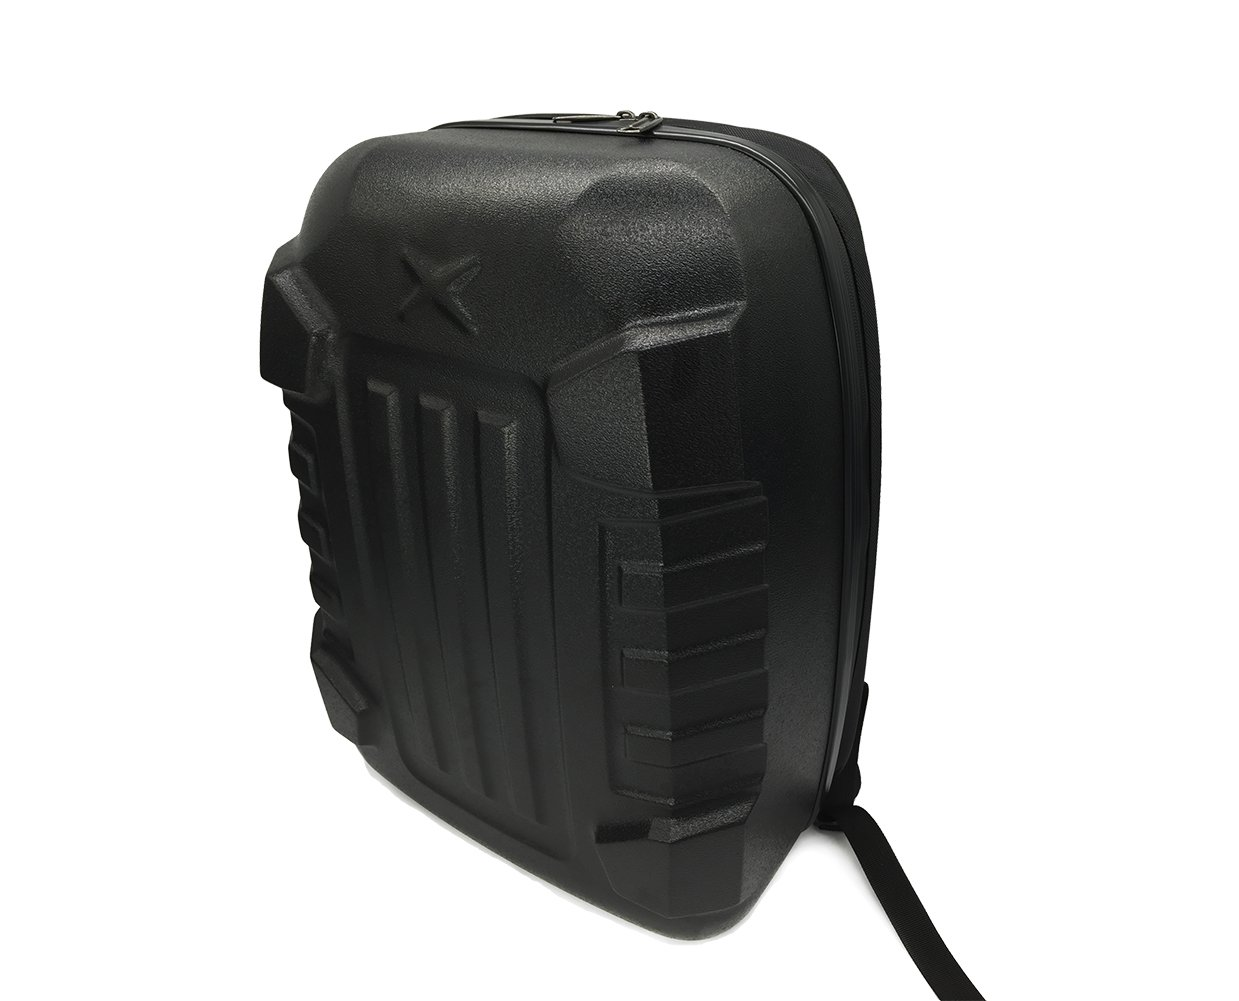 BTG Specialized Carrying Case Hard Shell Protective Backpack for Parrot Bebop 2 FPV Drone - Waterproof - Black